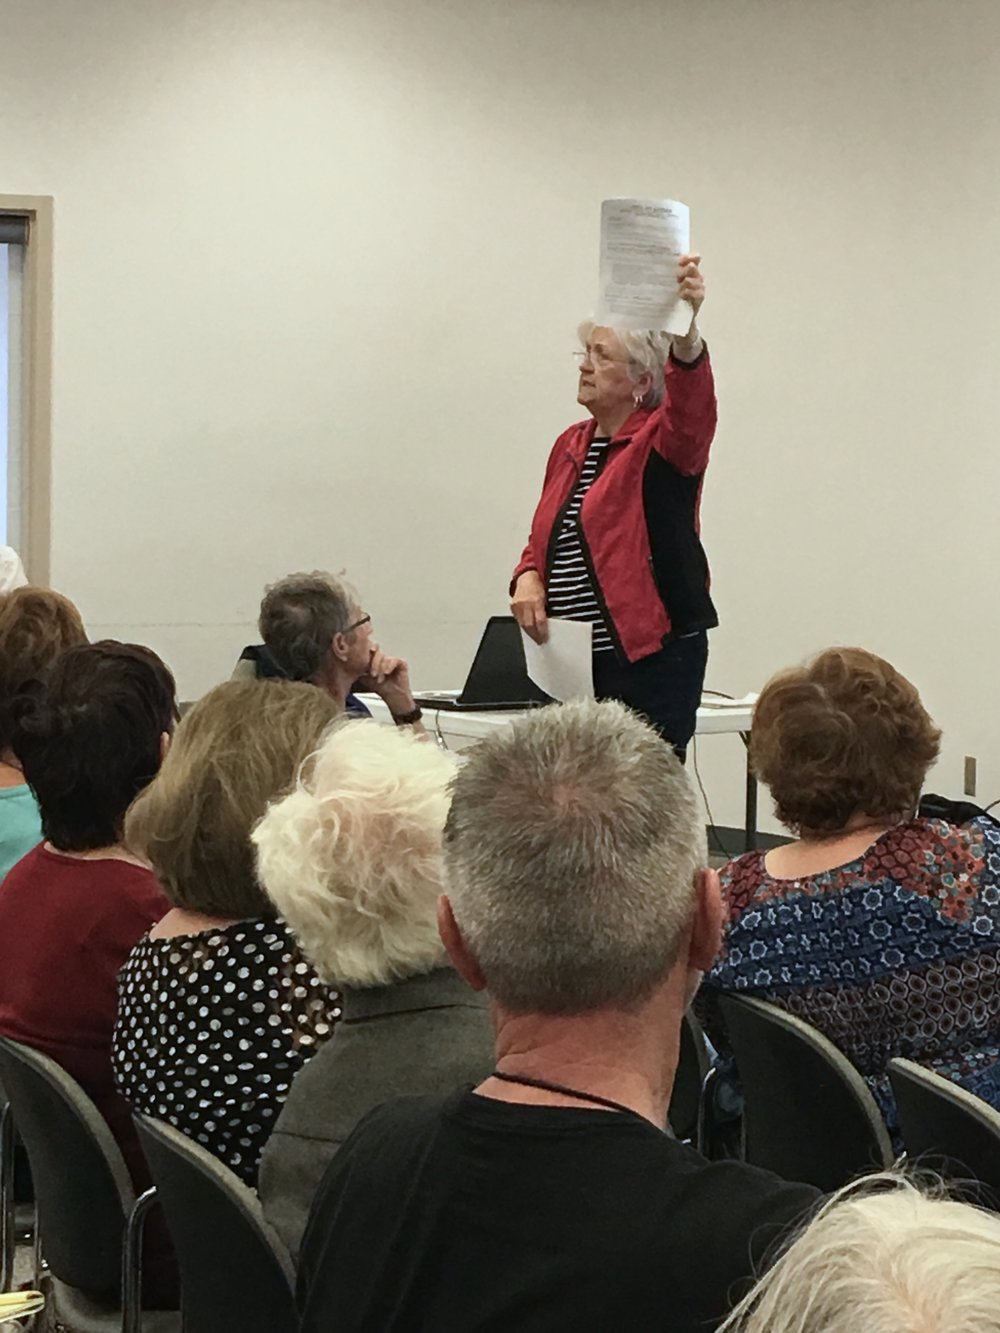 Retired public school teacher Sandy Daniel demonstrates her instructional skills as she outlines the week's Call to Action plan. -